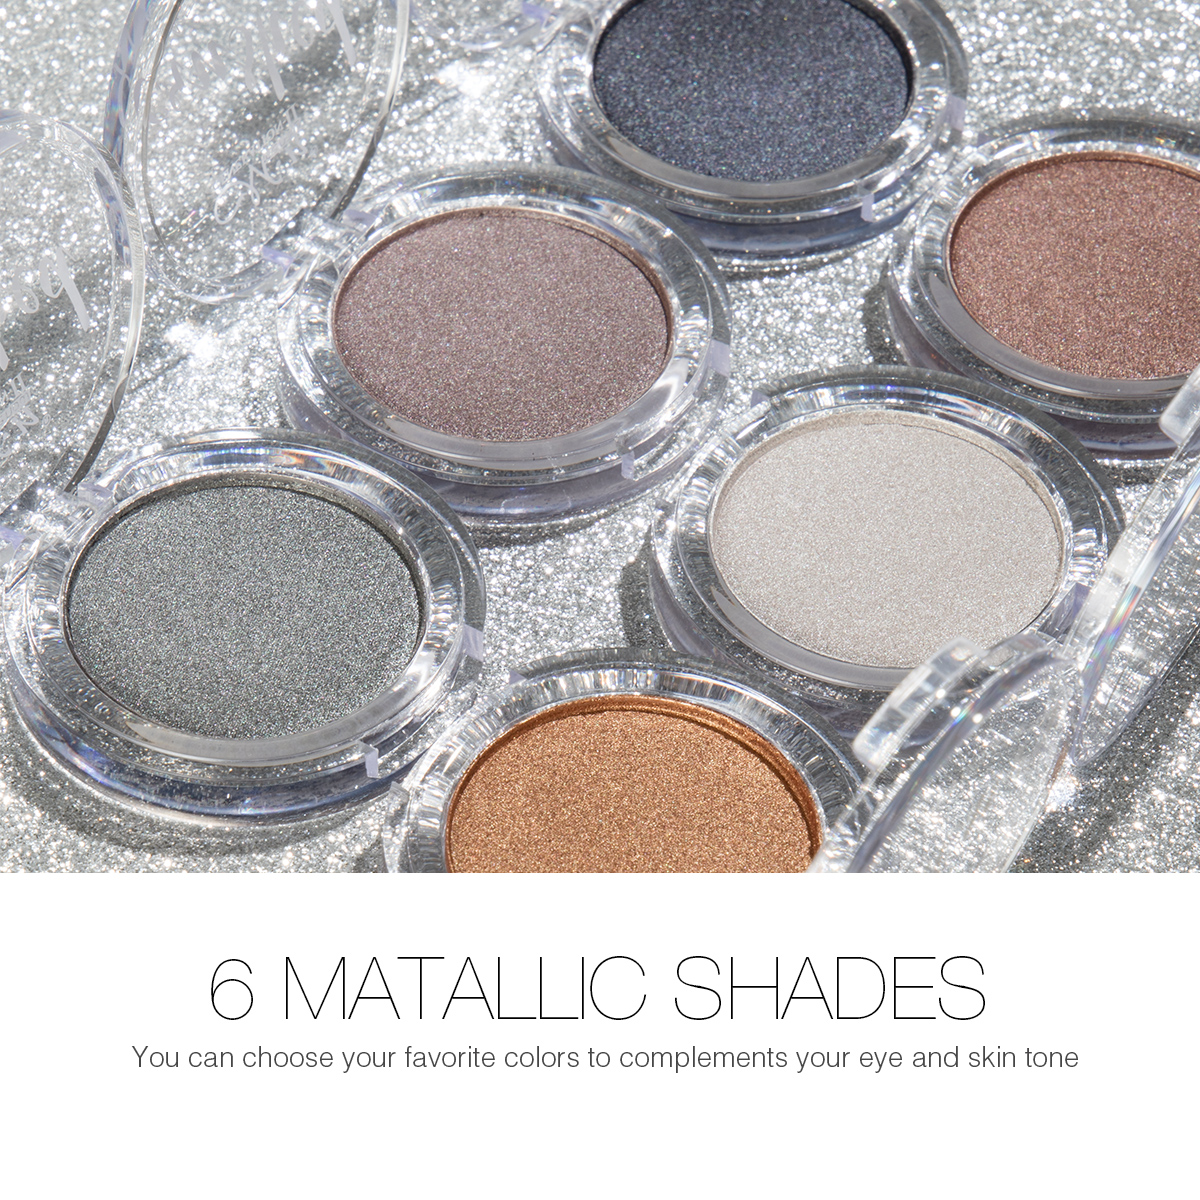 Menow E425 Cosmetic Eyes Makeup Metallic Eyeshadow Palette